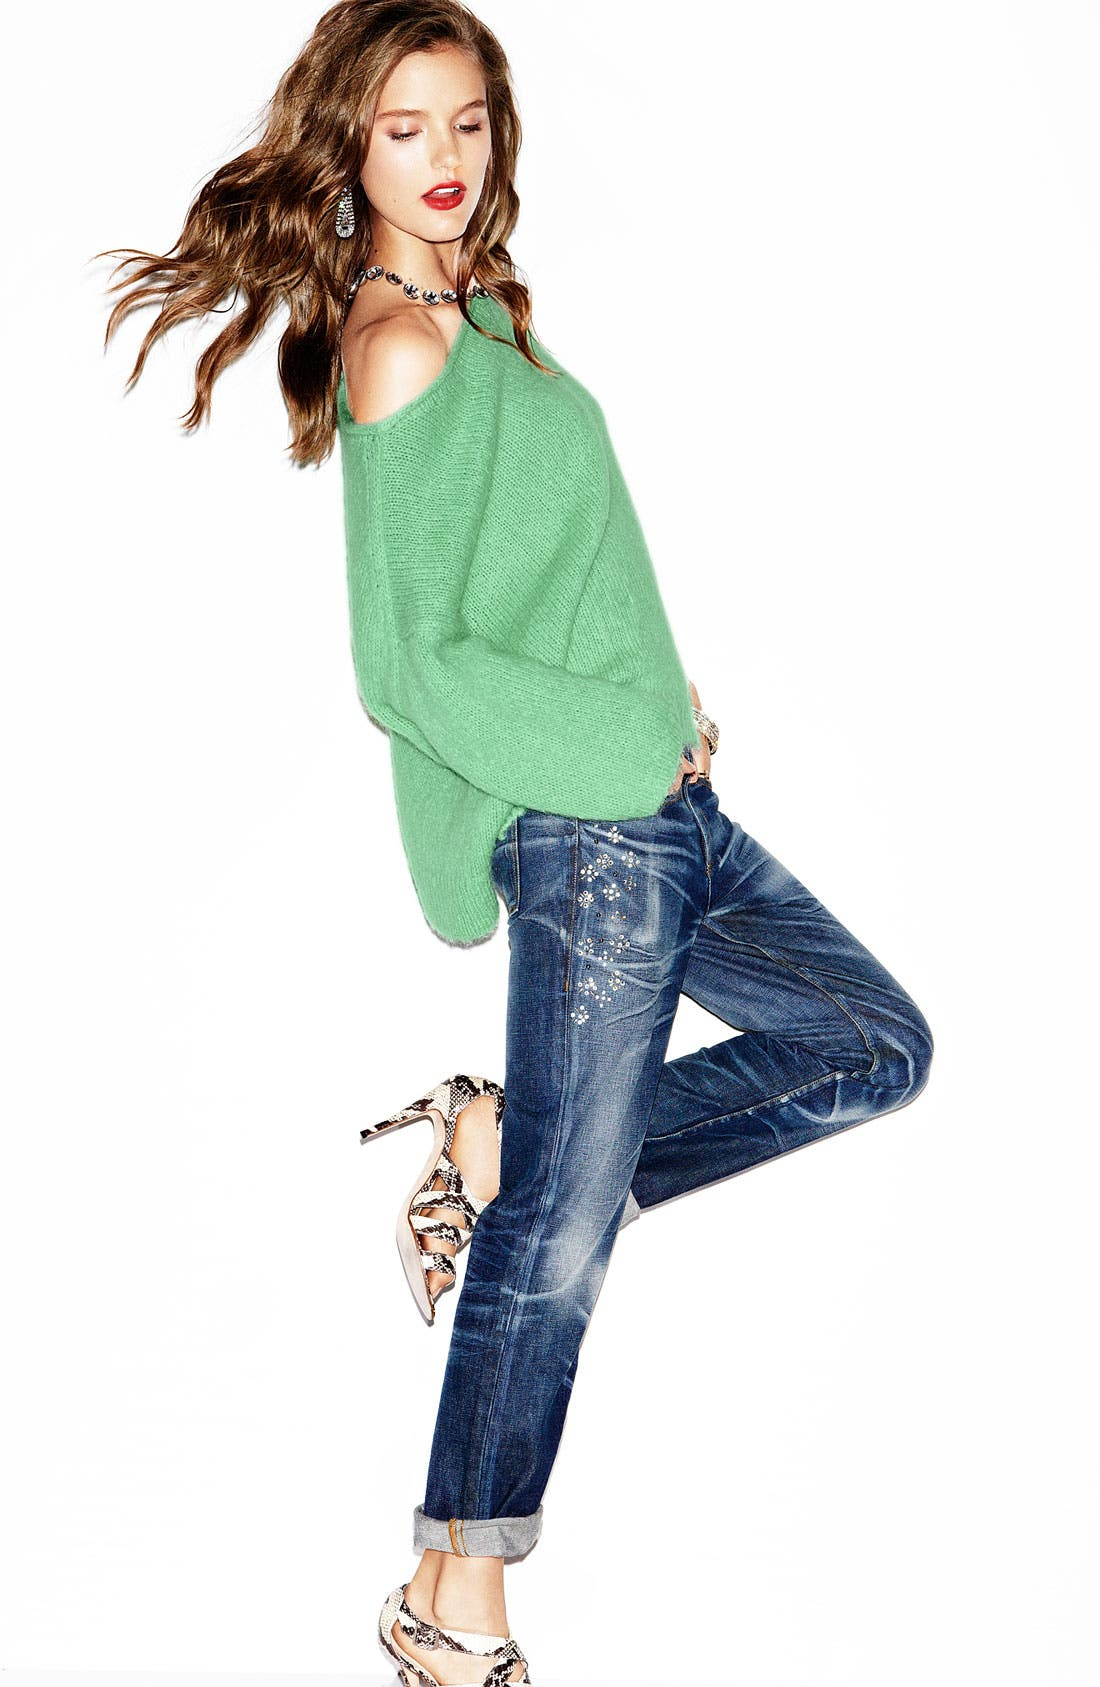 Main Image - Juicy Couture Sweater & Jeans